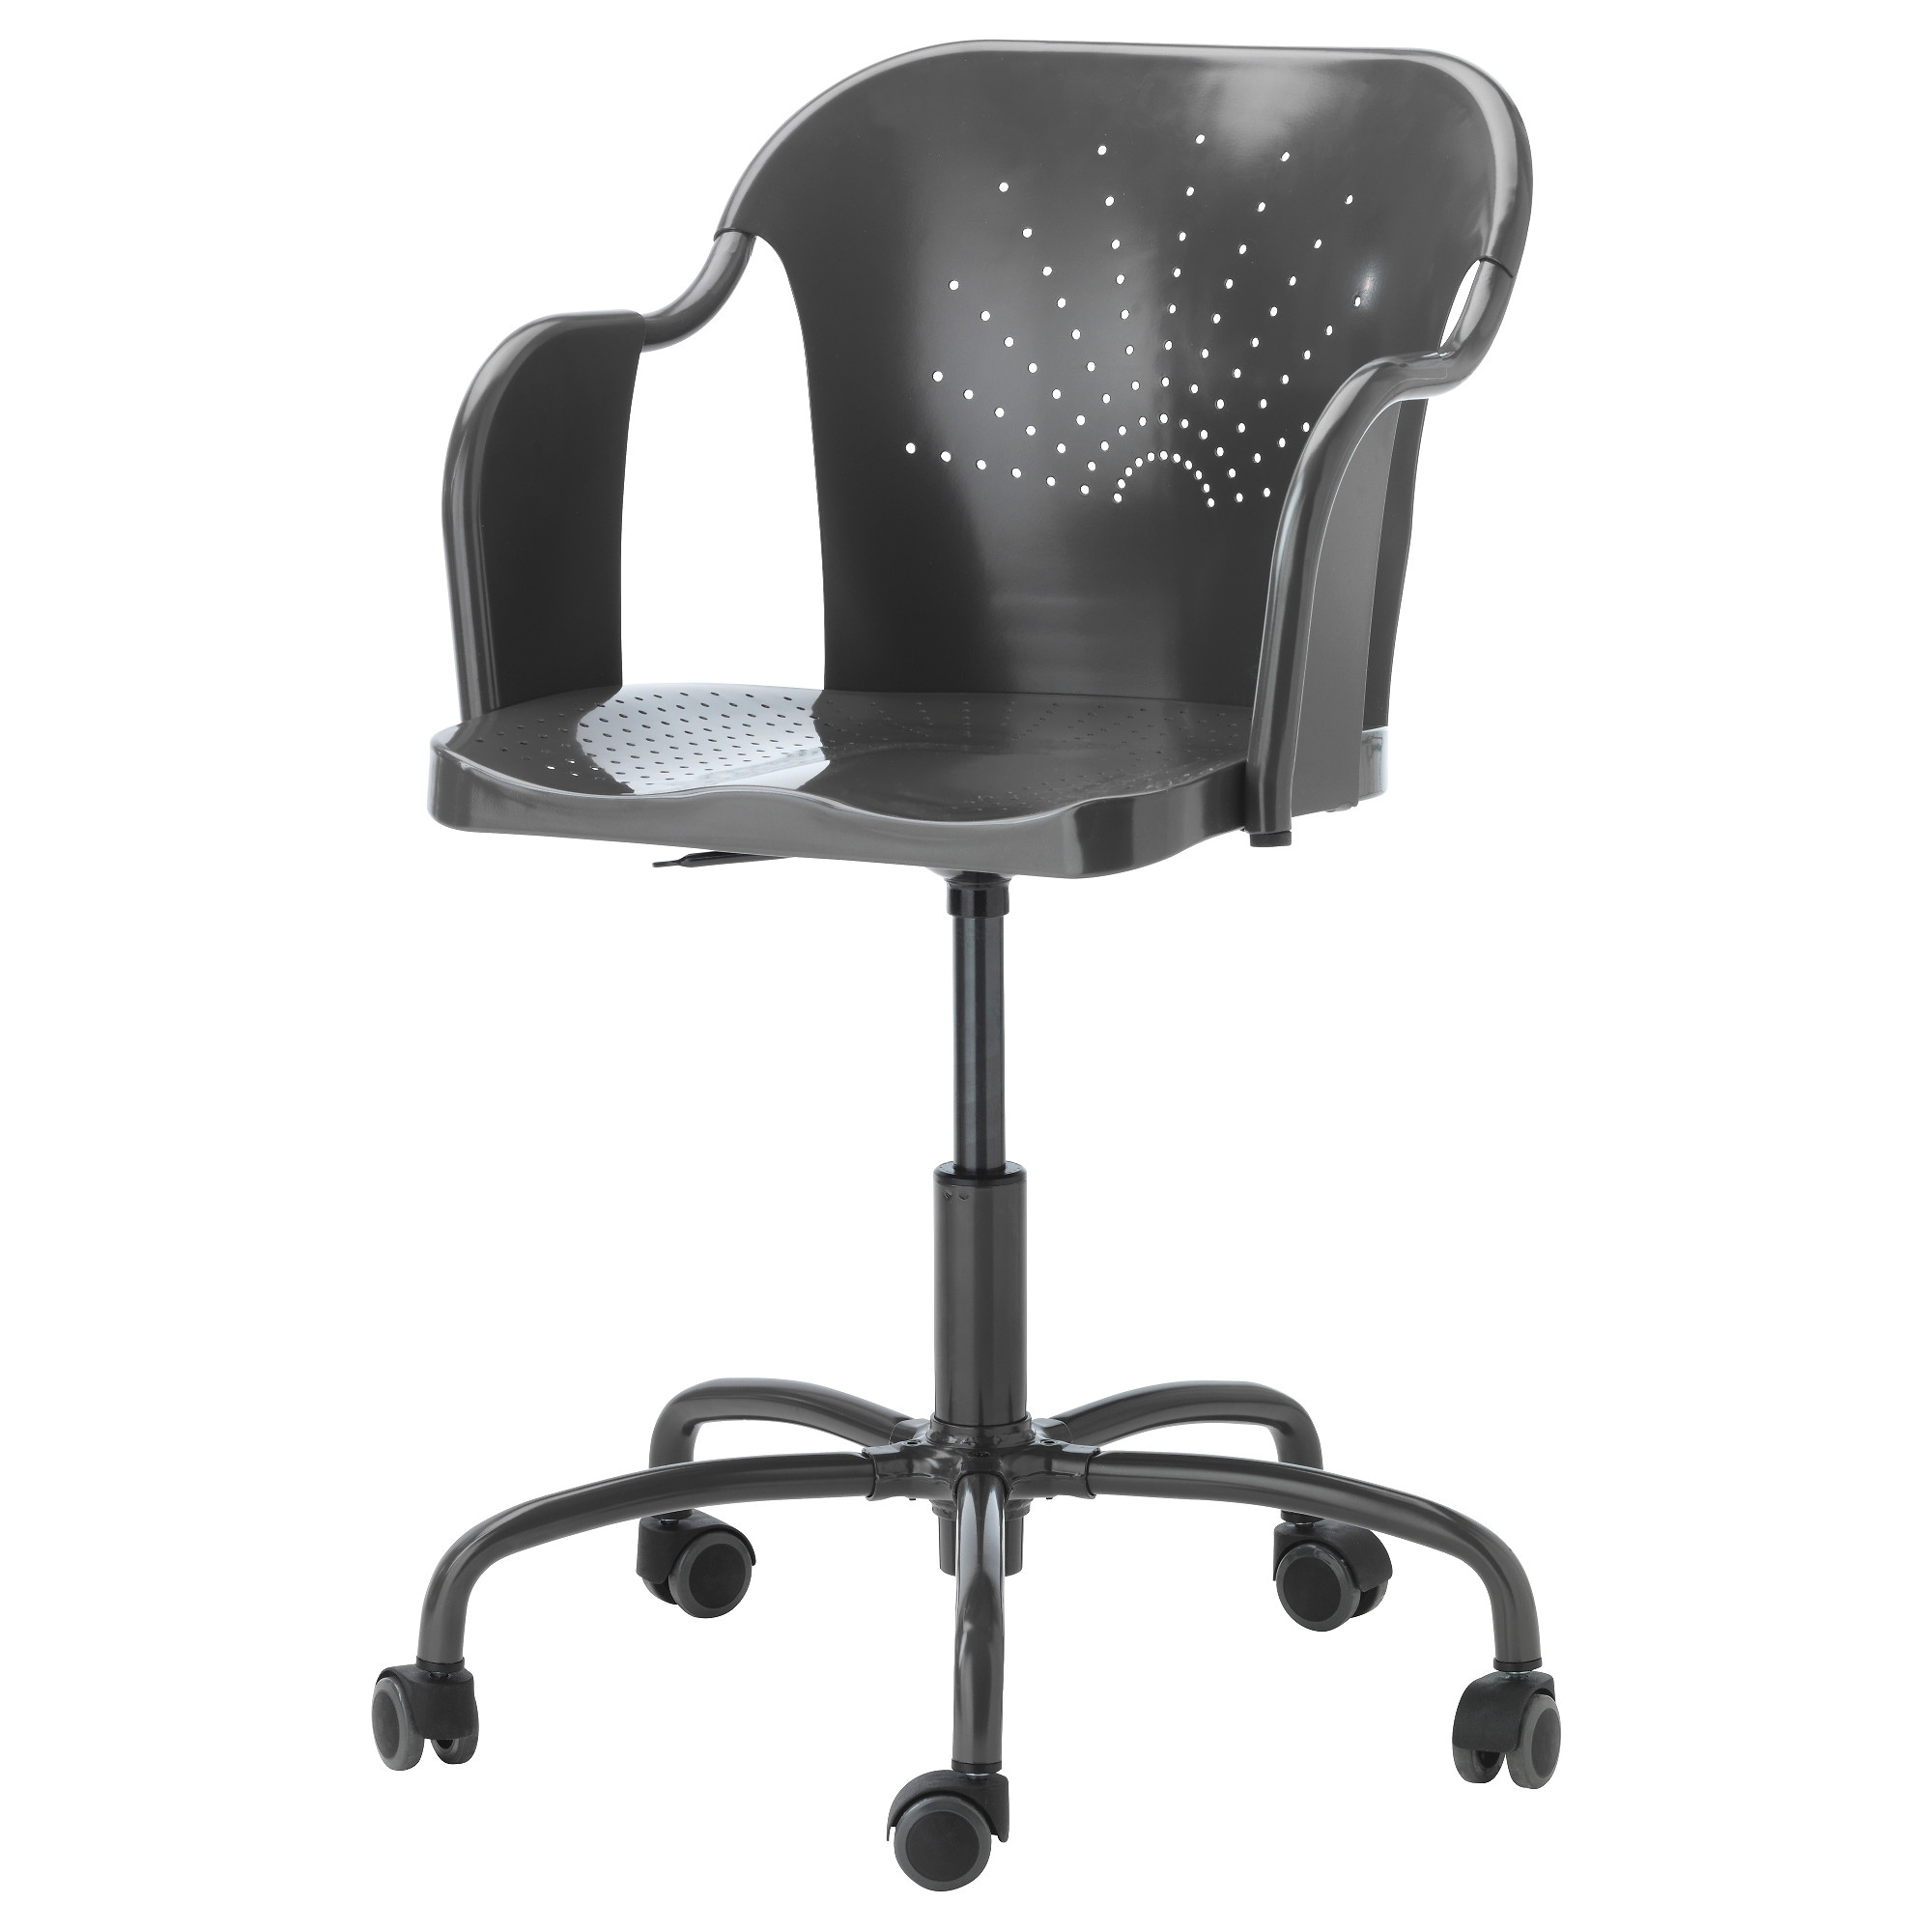 Black and white office chair - Roberget Swivel Chair Gray Tested For 243 Lb Width 23 5 8